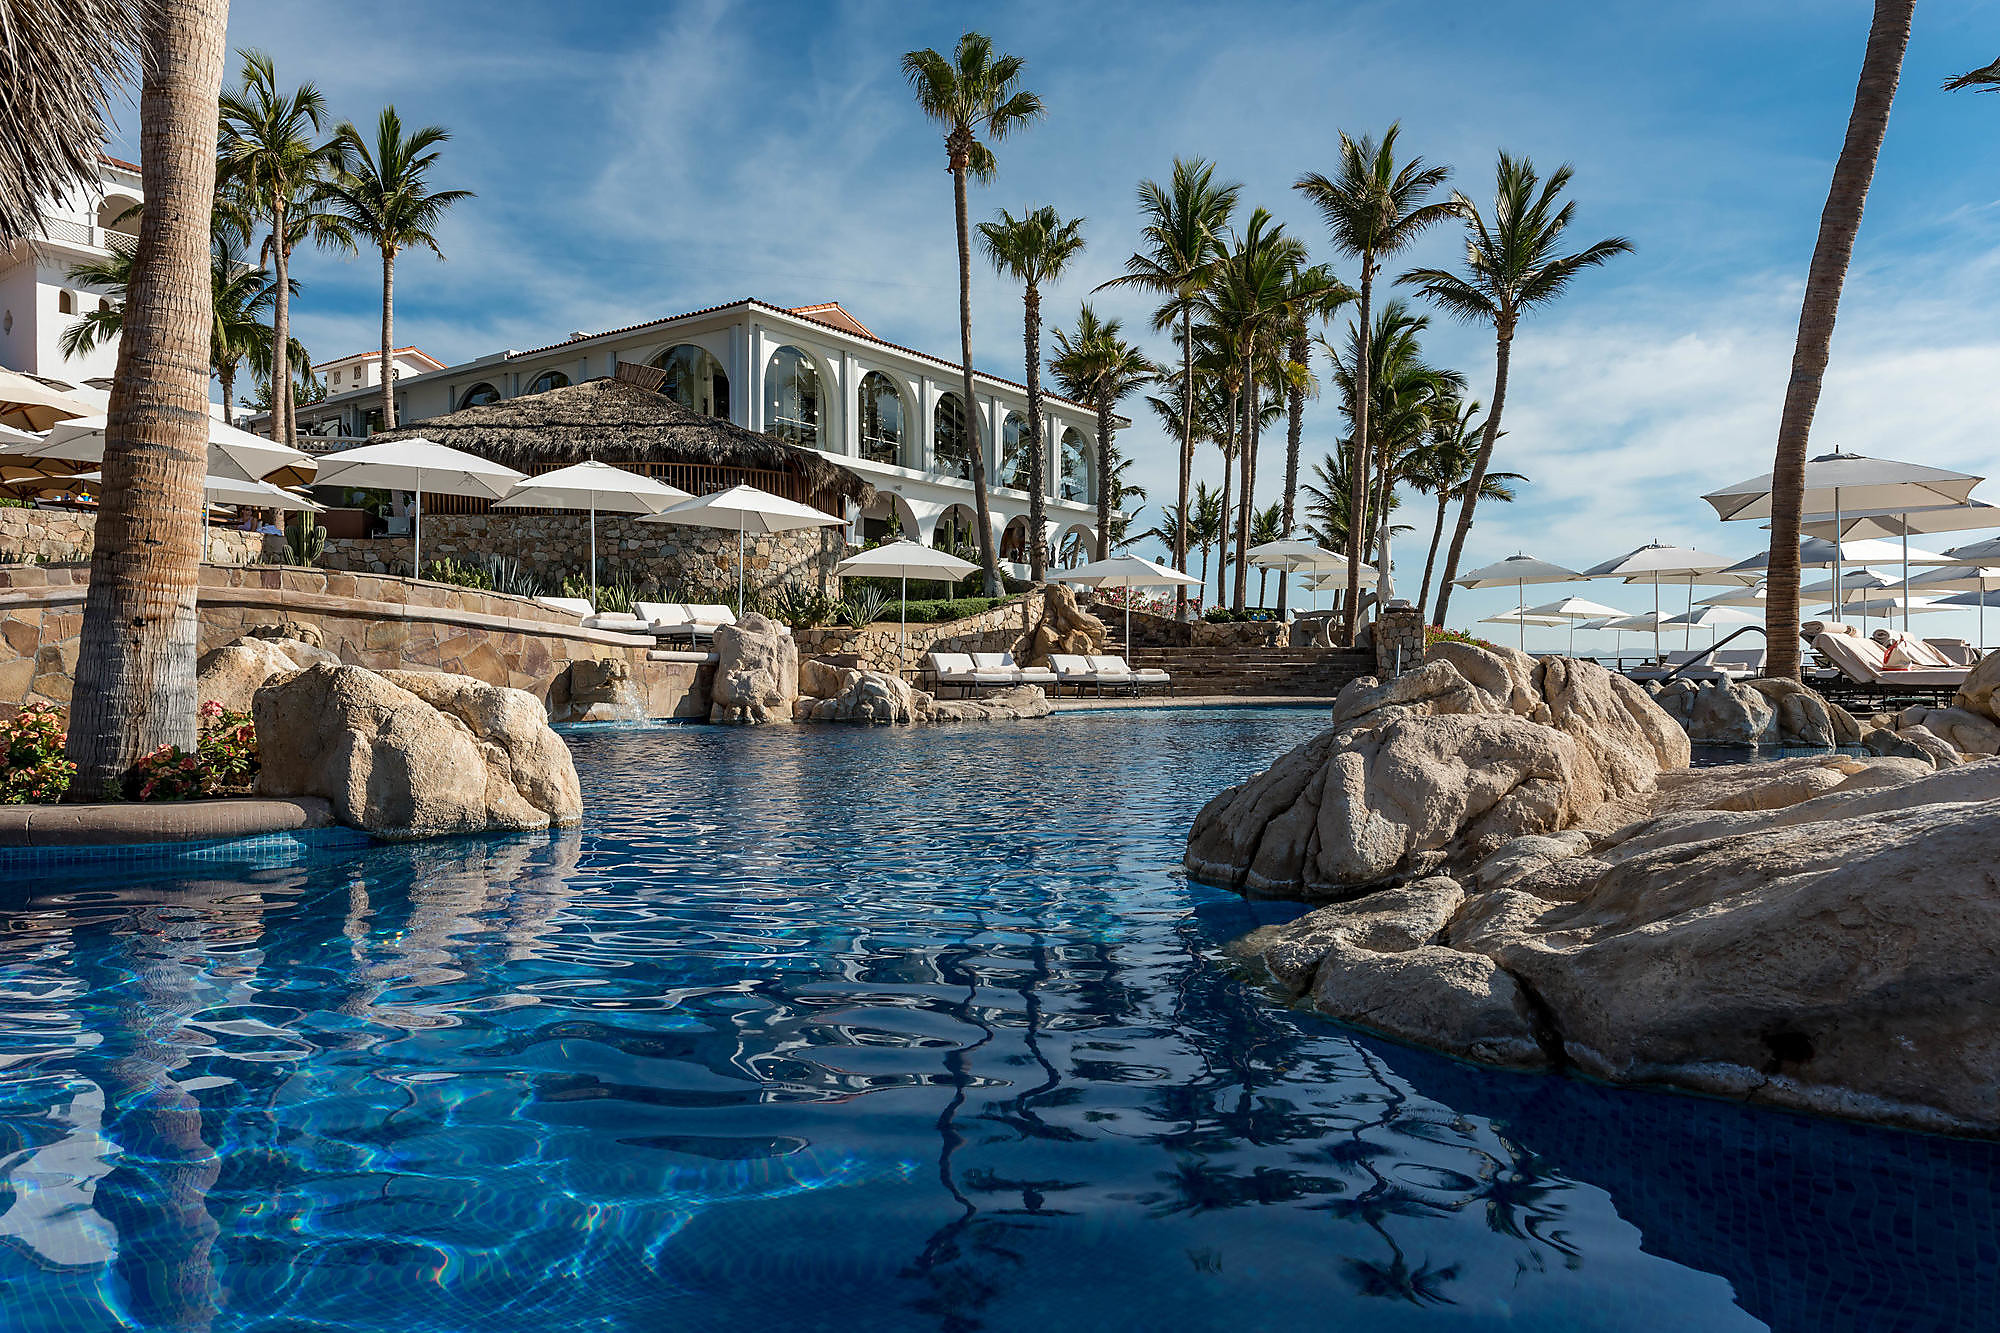 The Adult Pool at One&Only Palmilla in Los Cabos